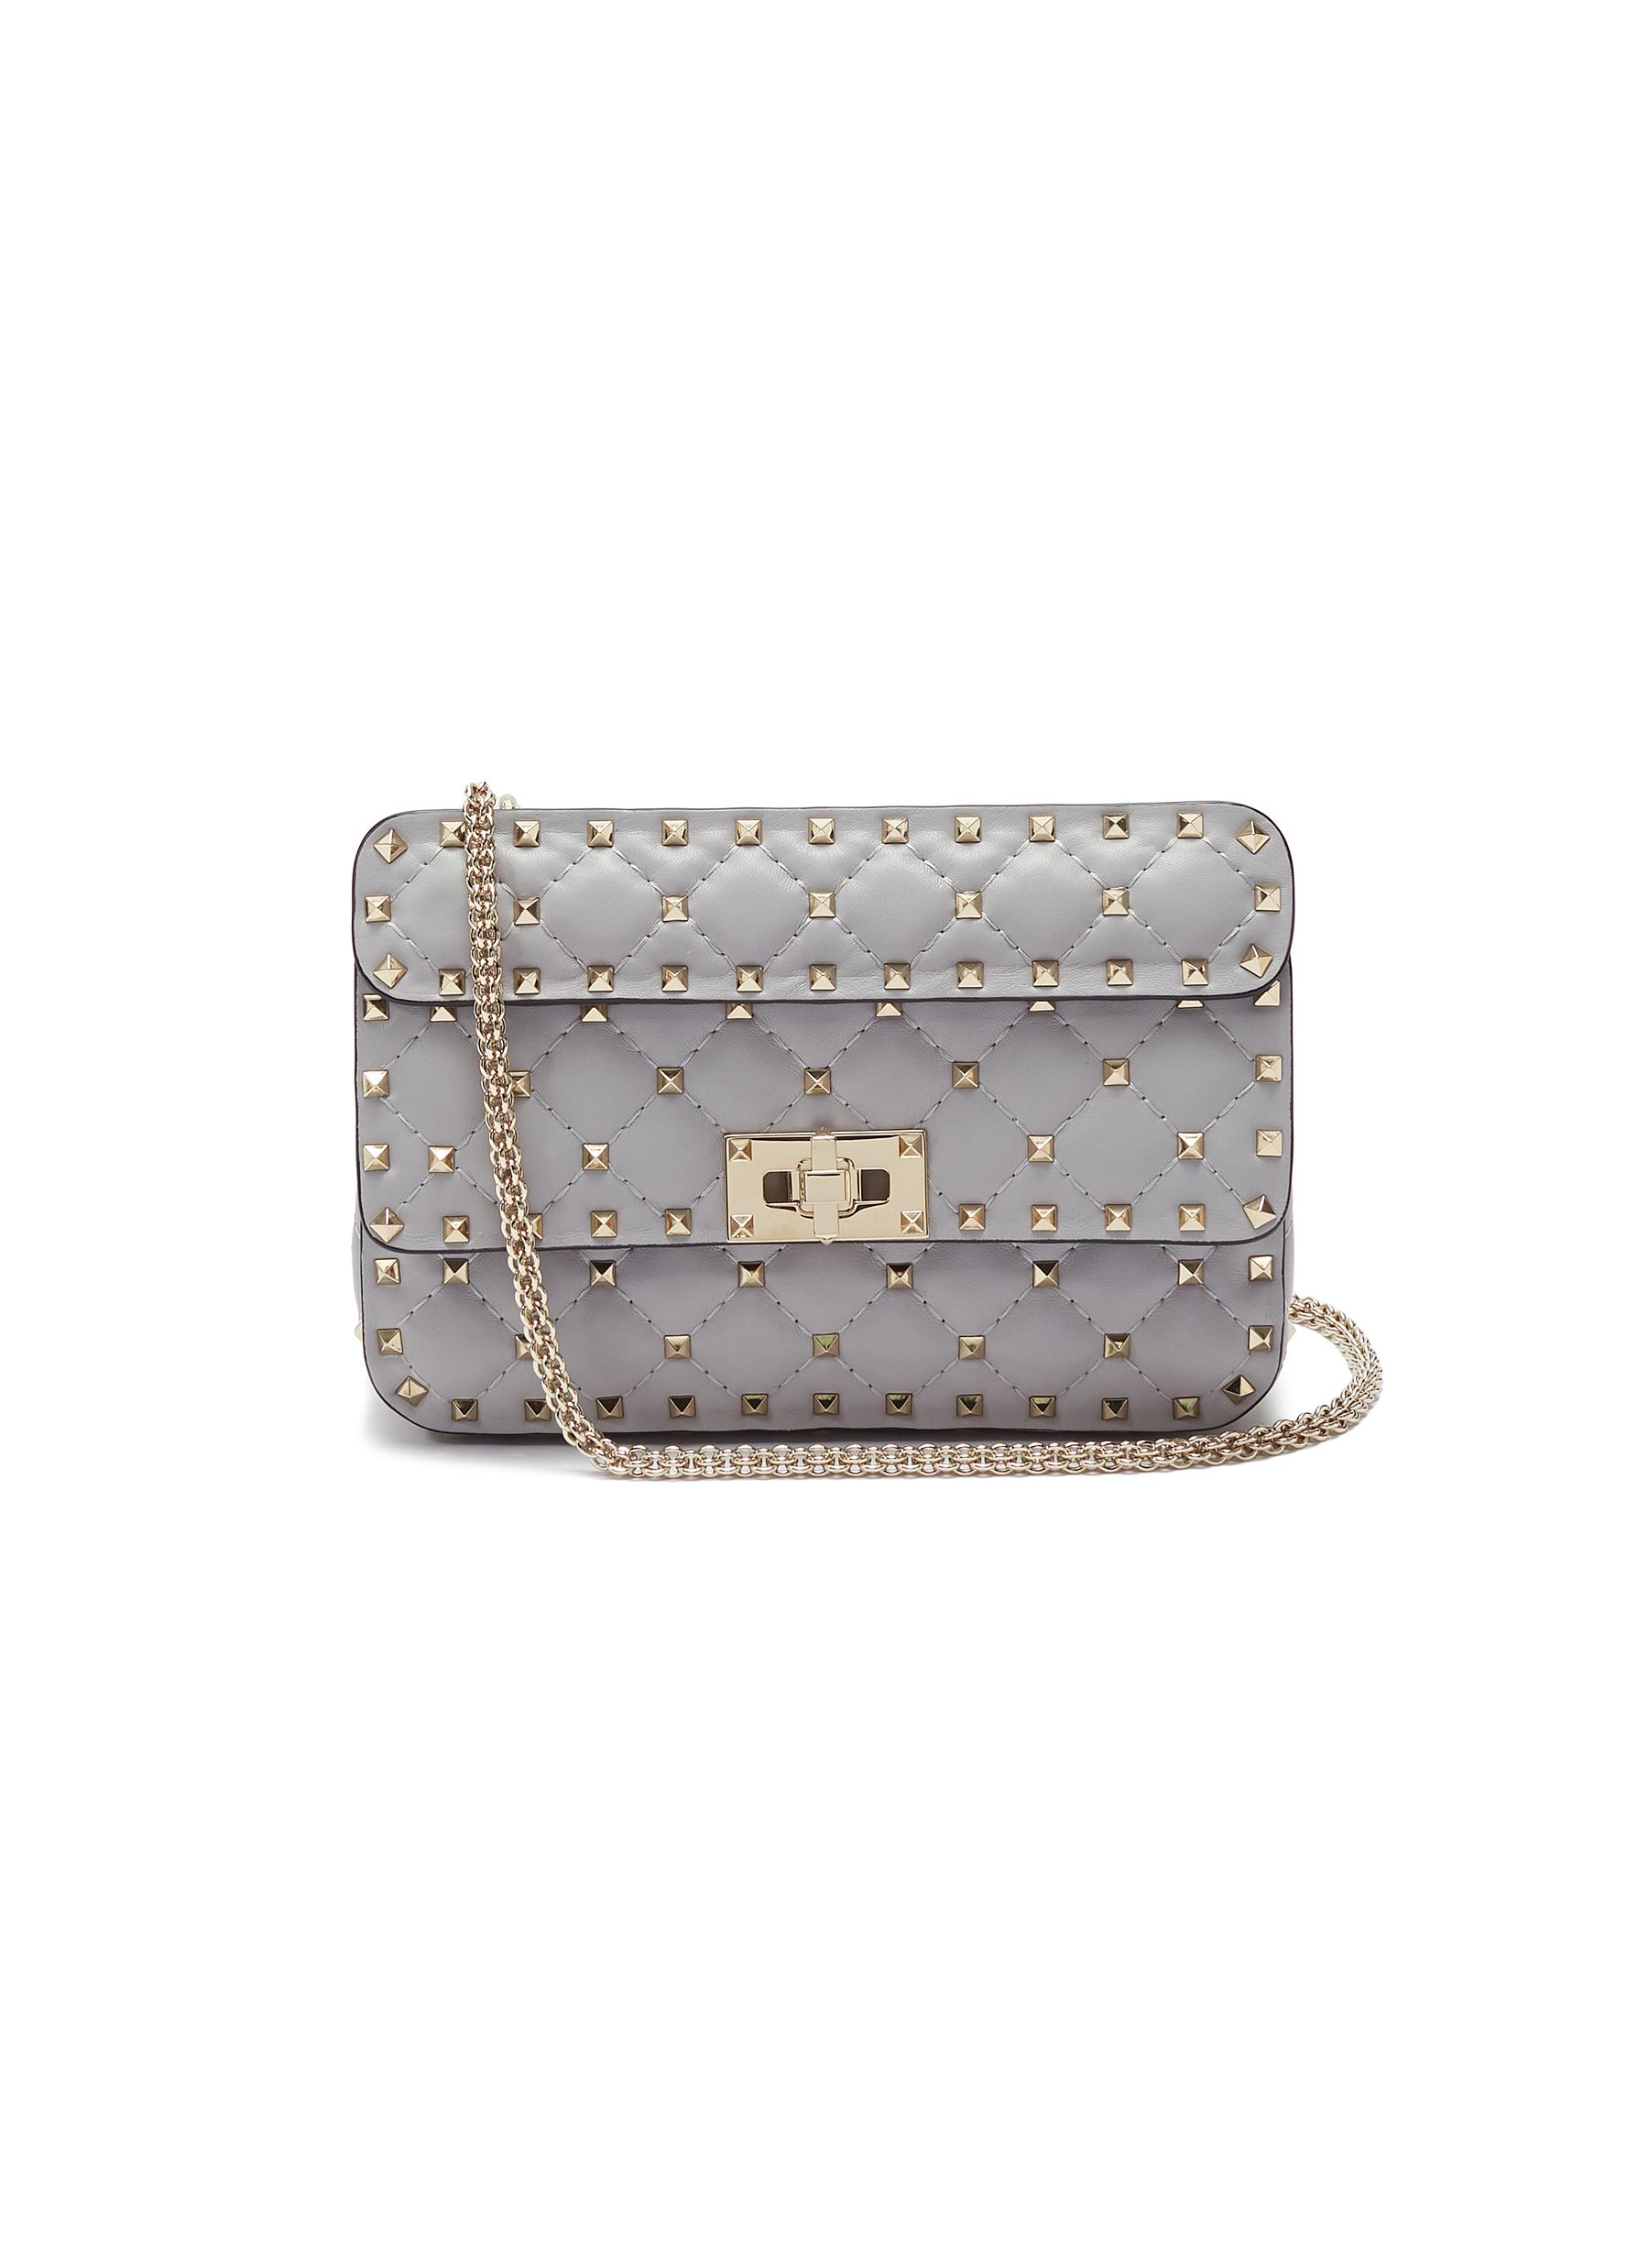 dbfae0db3b Main View - Click To Enlarge - VALENTINO - 'Rockstud Spike' small quilted  leather